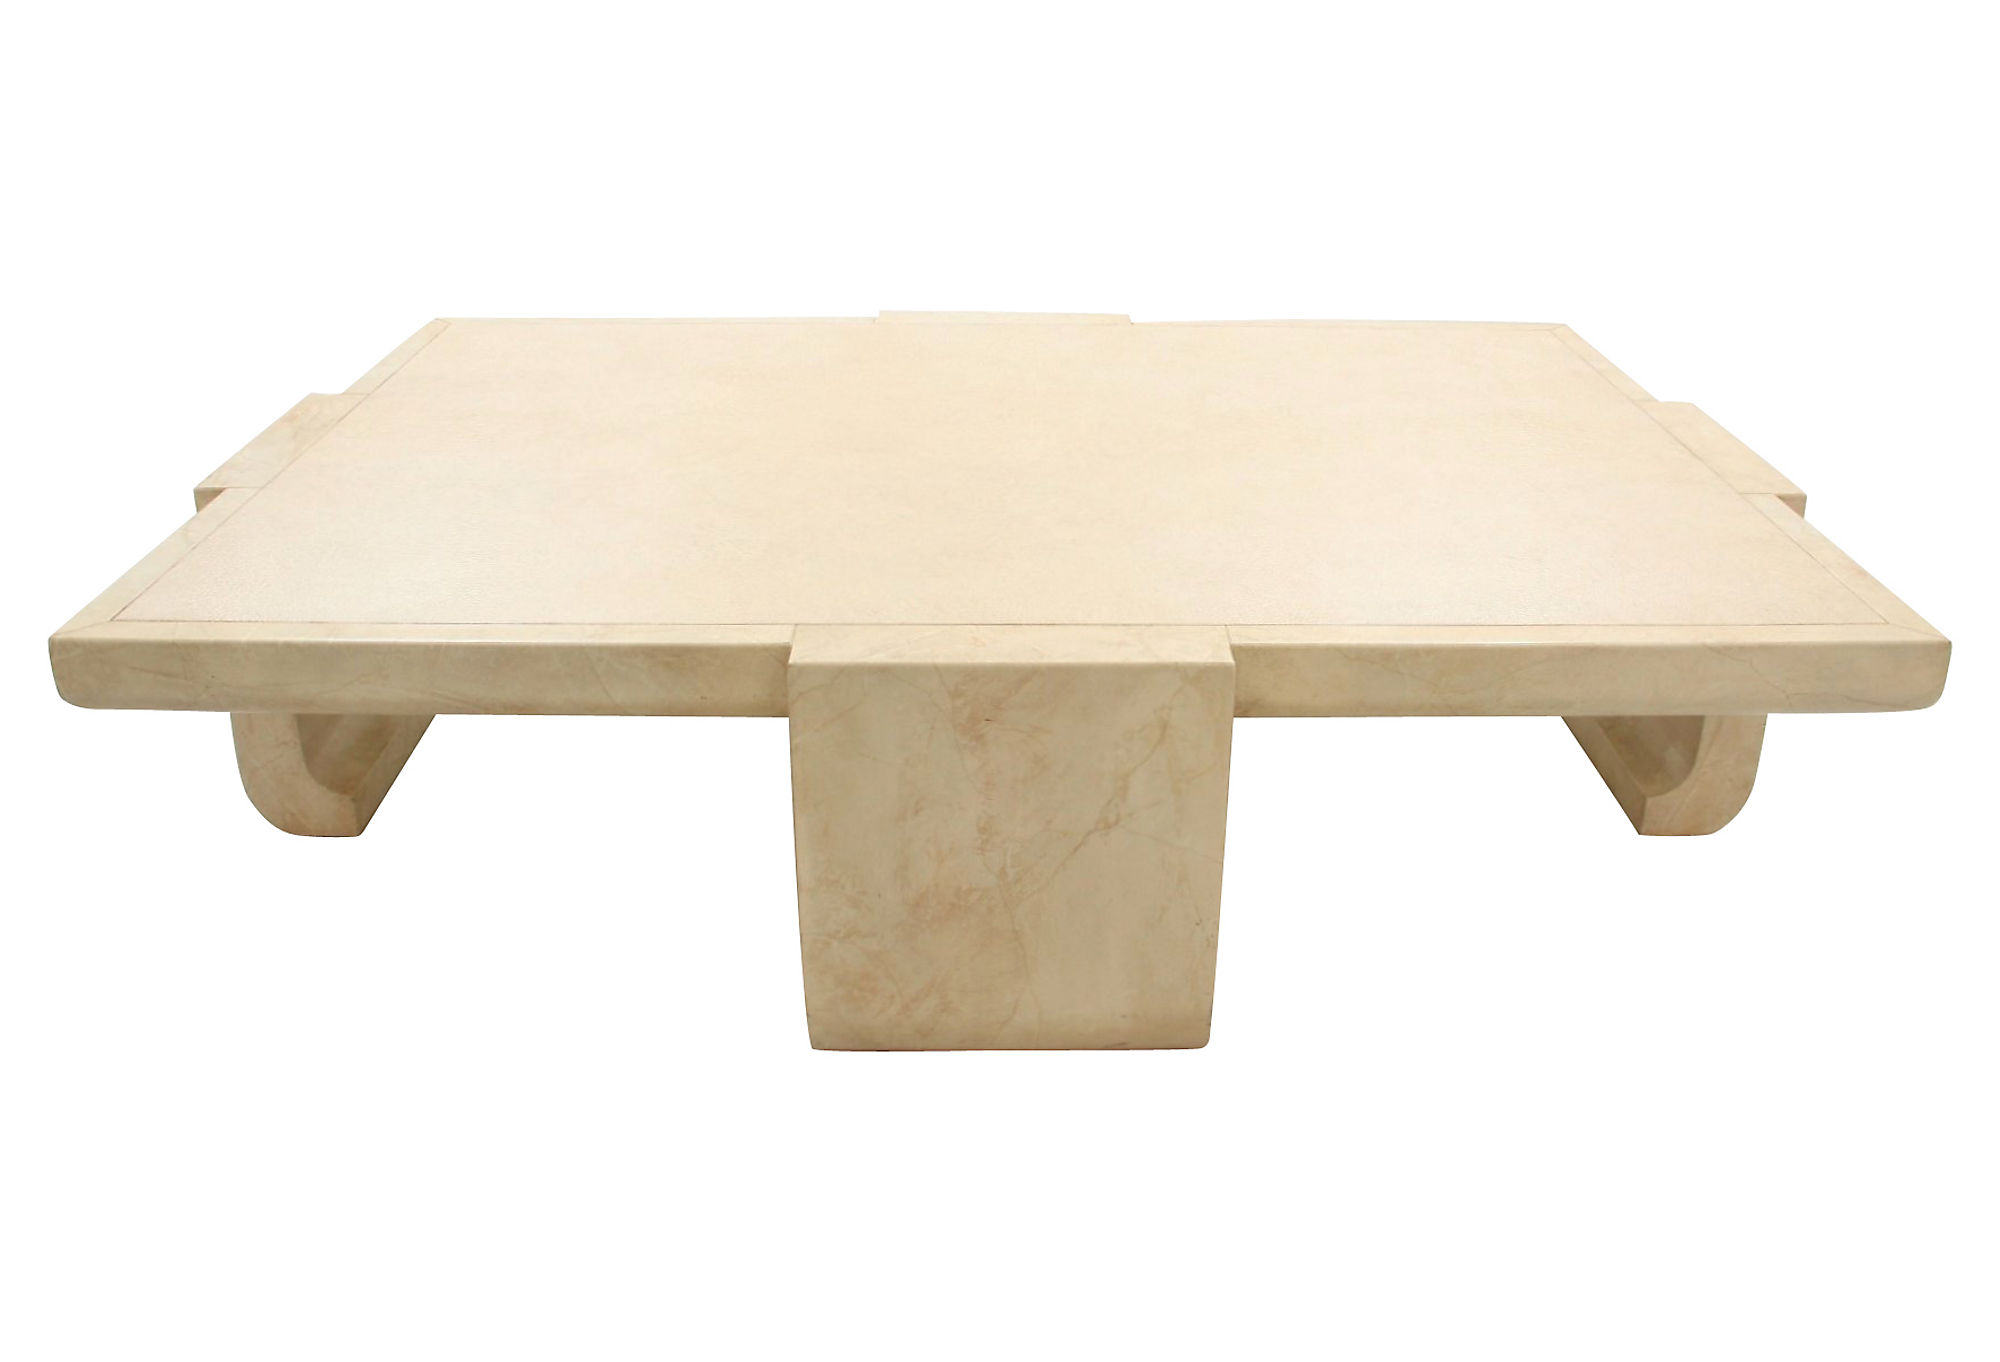 Designer alessandro For Baker Coffee Table Taupe by e Kings